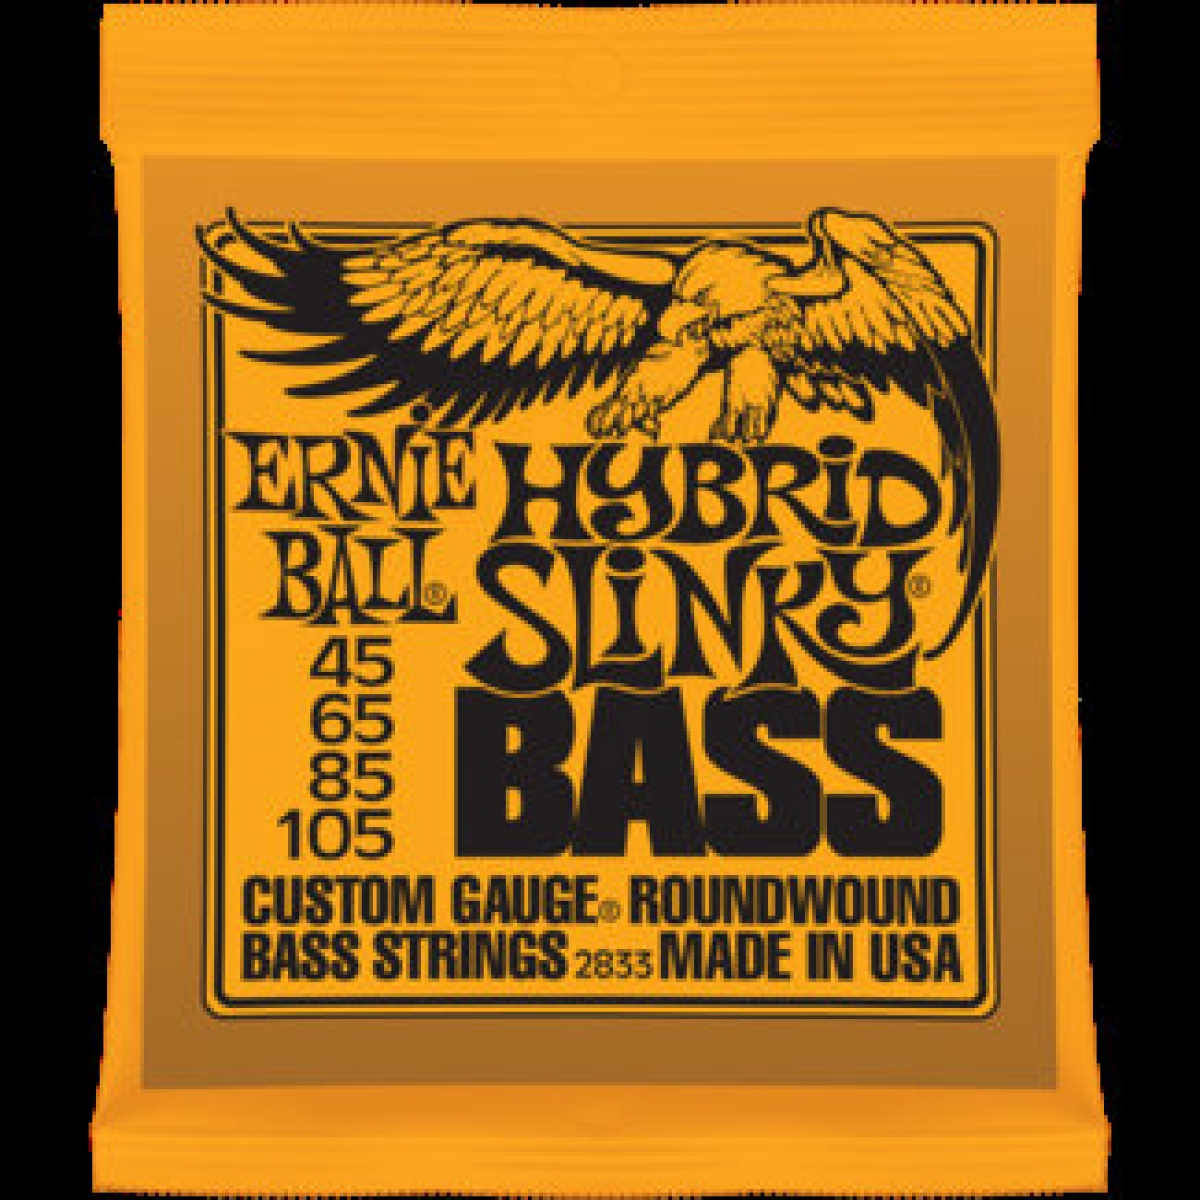 2 sets of ernie ball 2833 hybrid slinky electric bass strings 45 105 at promenade music. Black Bedroom Furniture Sets. Home Design Ideas